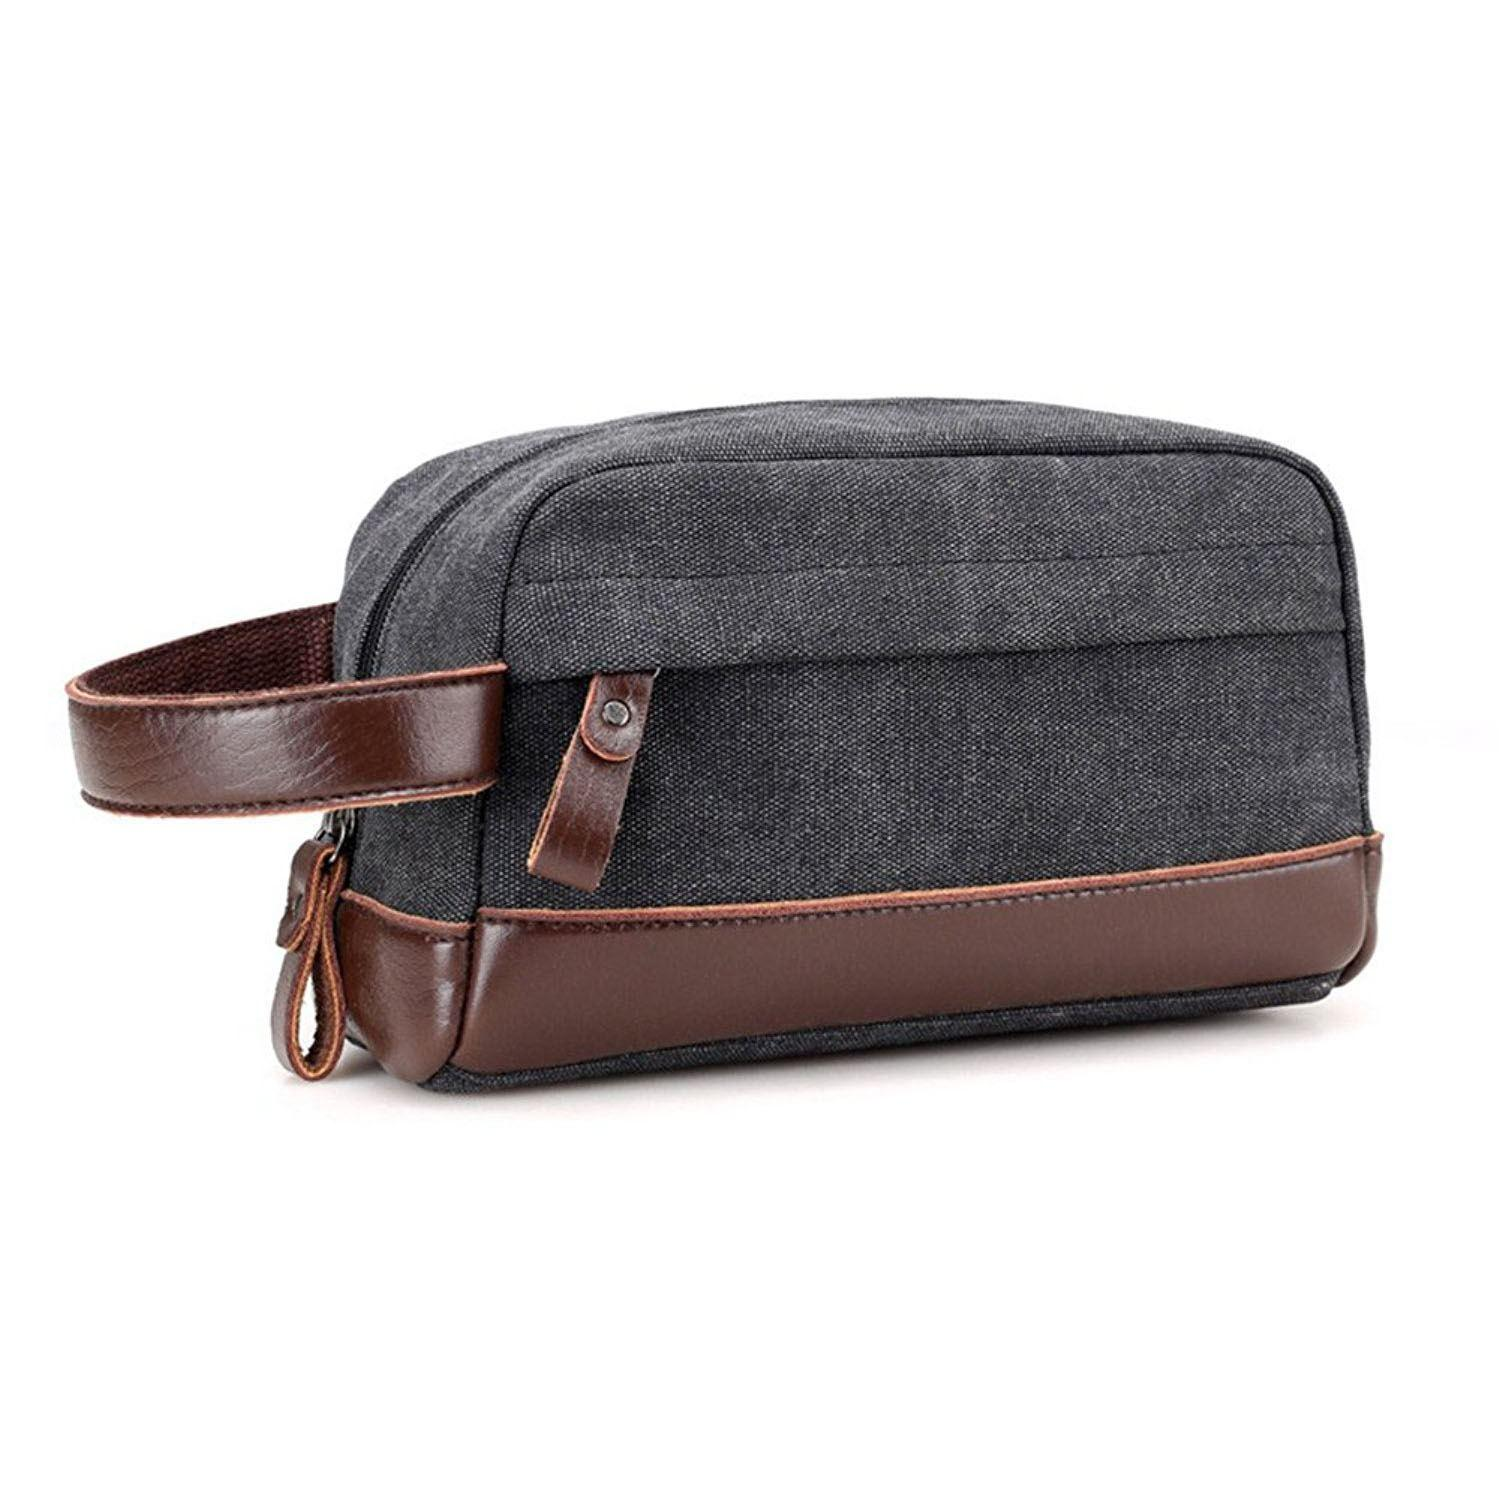 TFTP Toiletry Organizer Bag For Men Canvas Dopp Kits Shaving Kit Black  Cheap Handbags Leather Satchel From Universe222,  36.45  DHgate.Com 5251bb2ff9